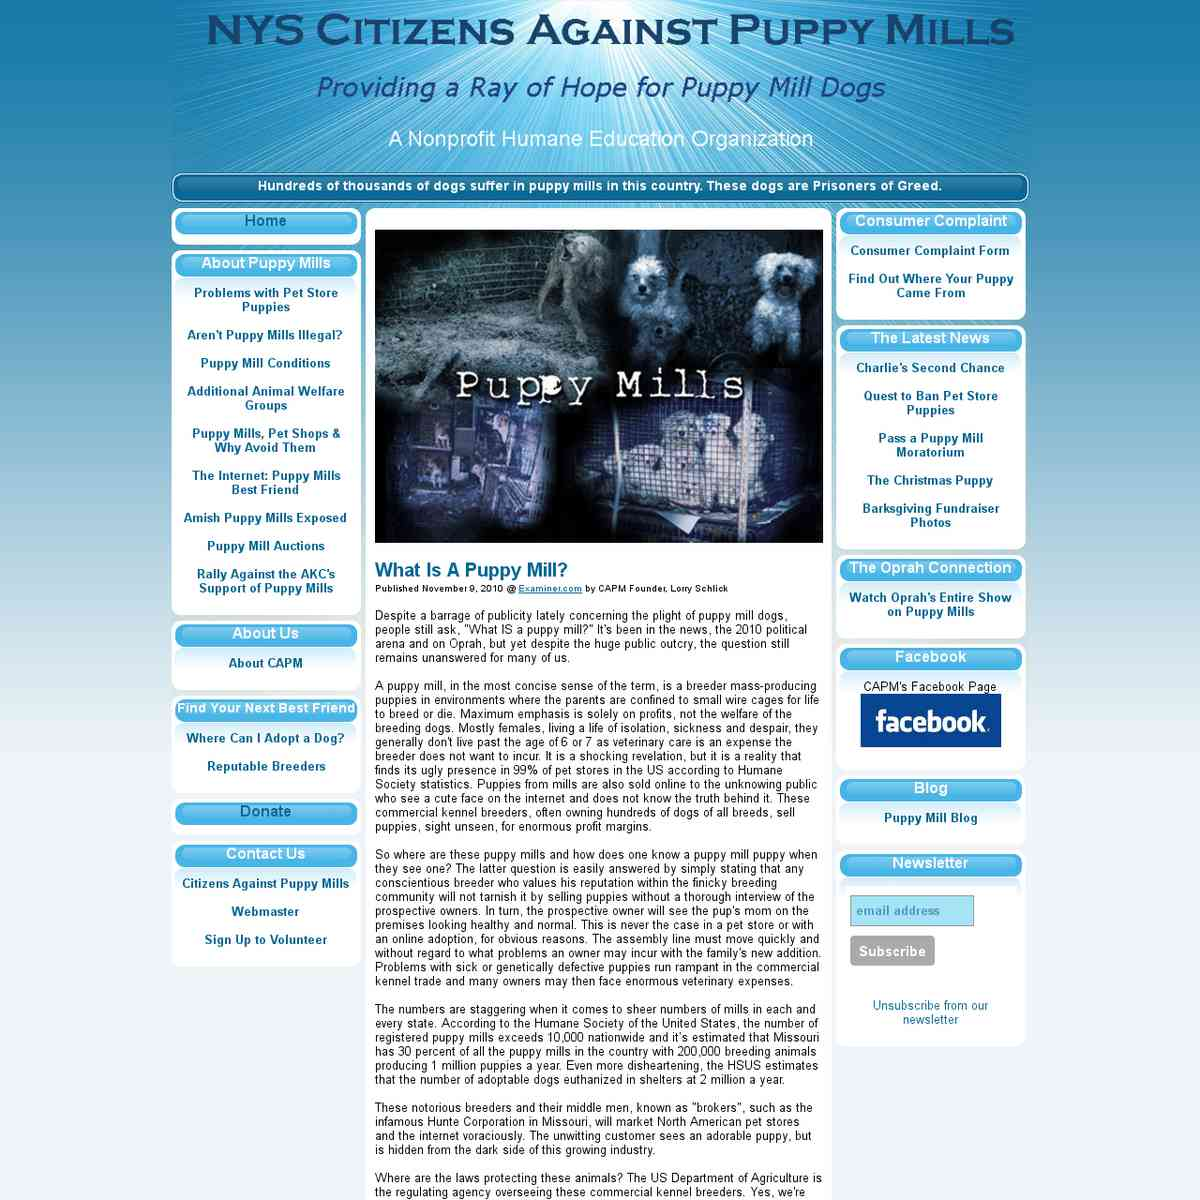 NYS Citizens Against Puppy Mills